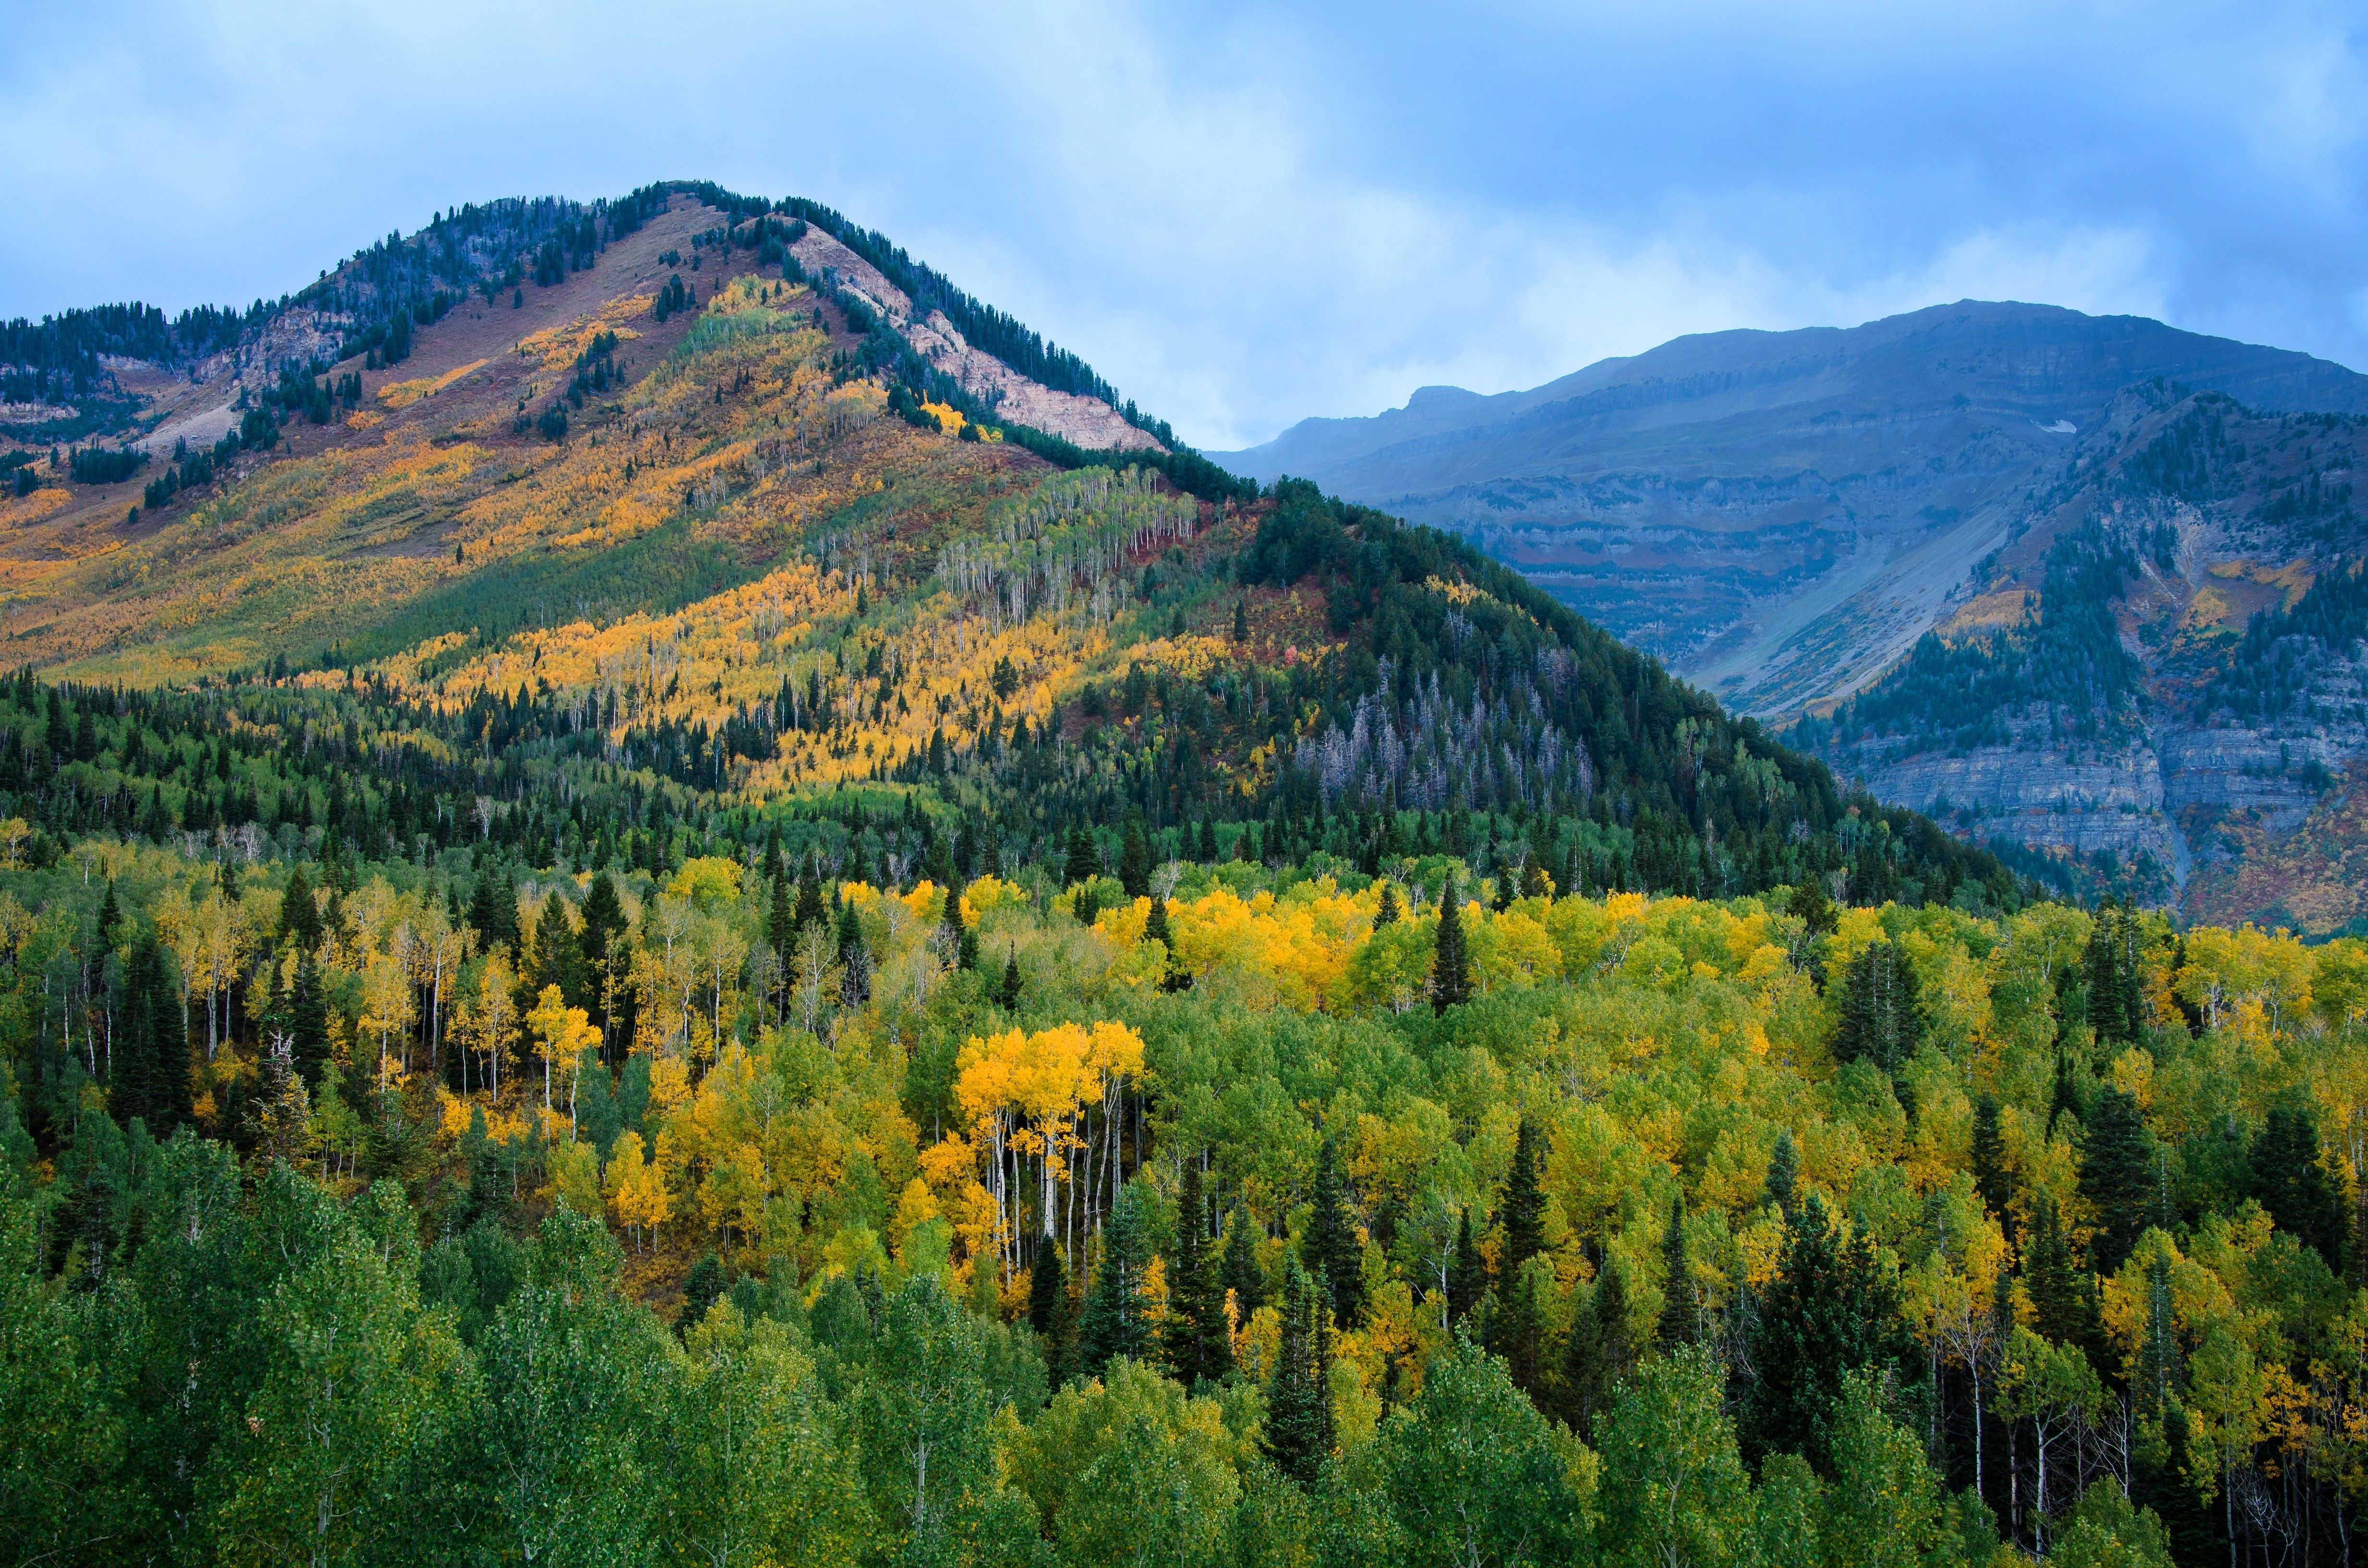 The Alpine Loop mountains covered in trees during the autumn season.